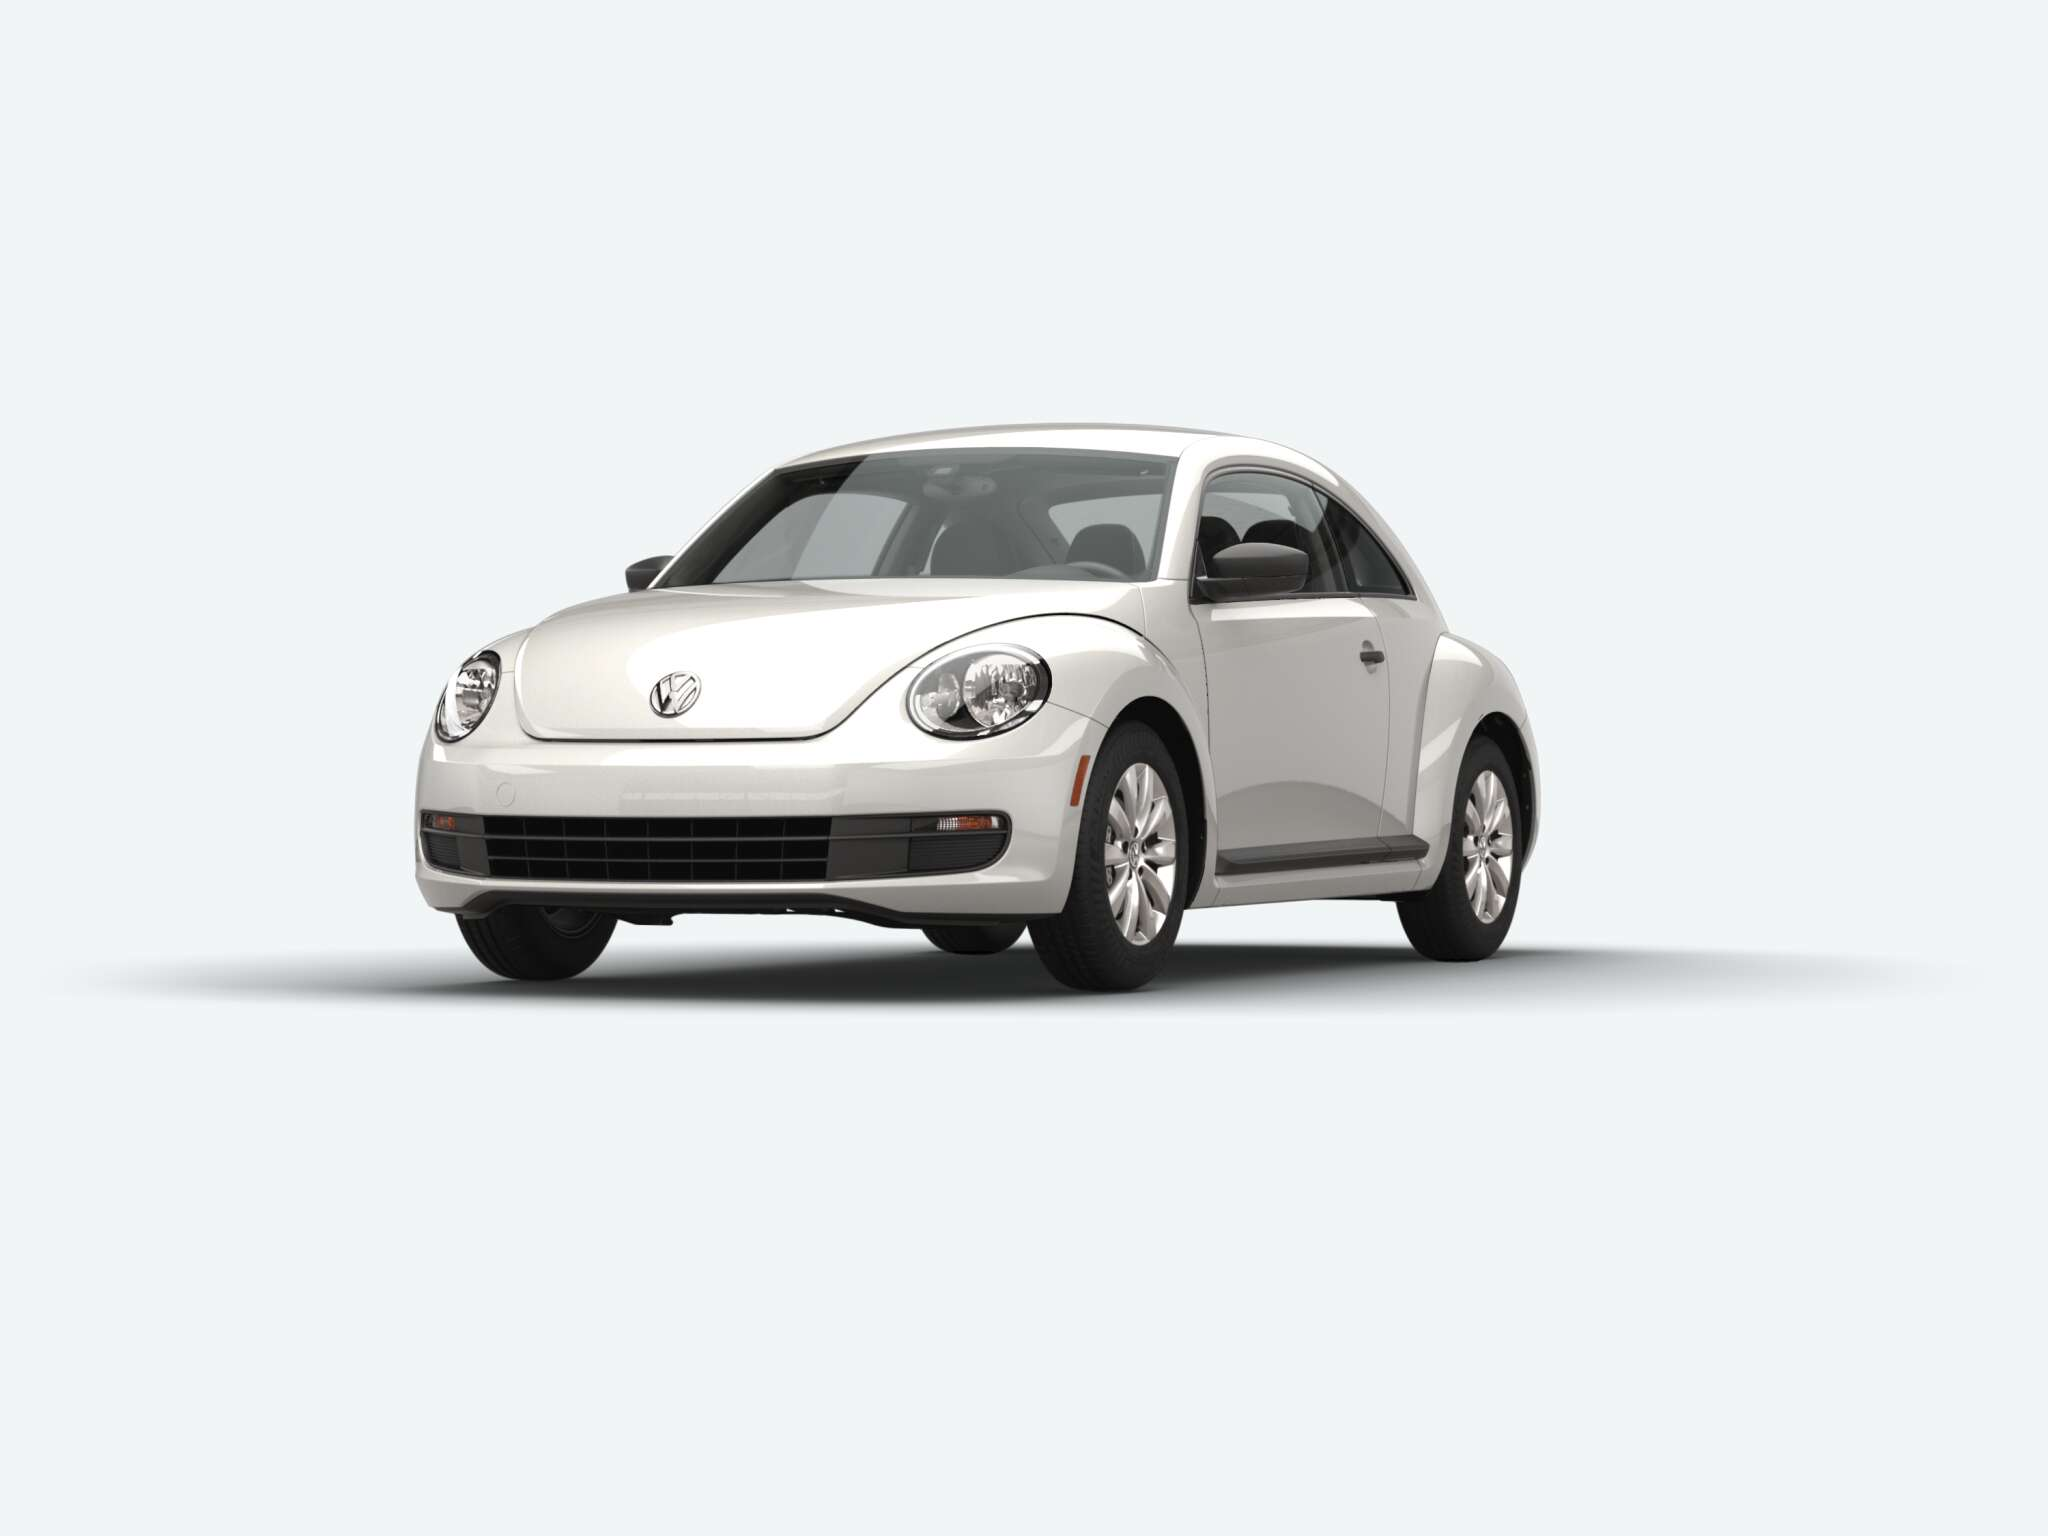 Volkswagen Beetle Se Available Colors